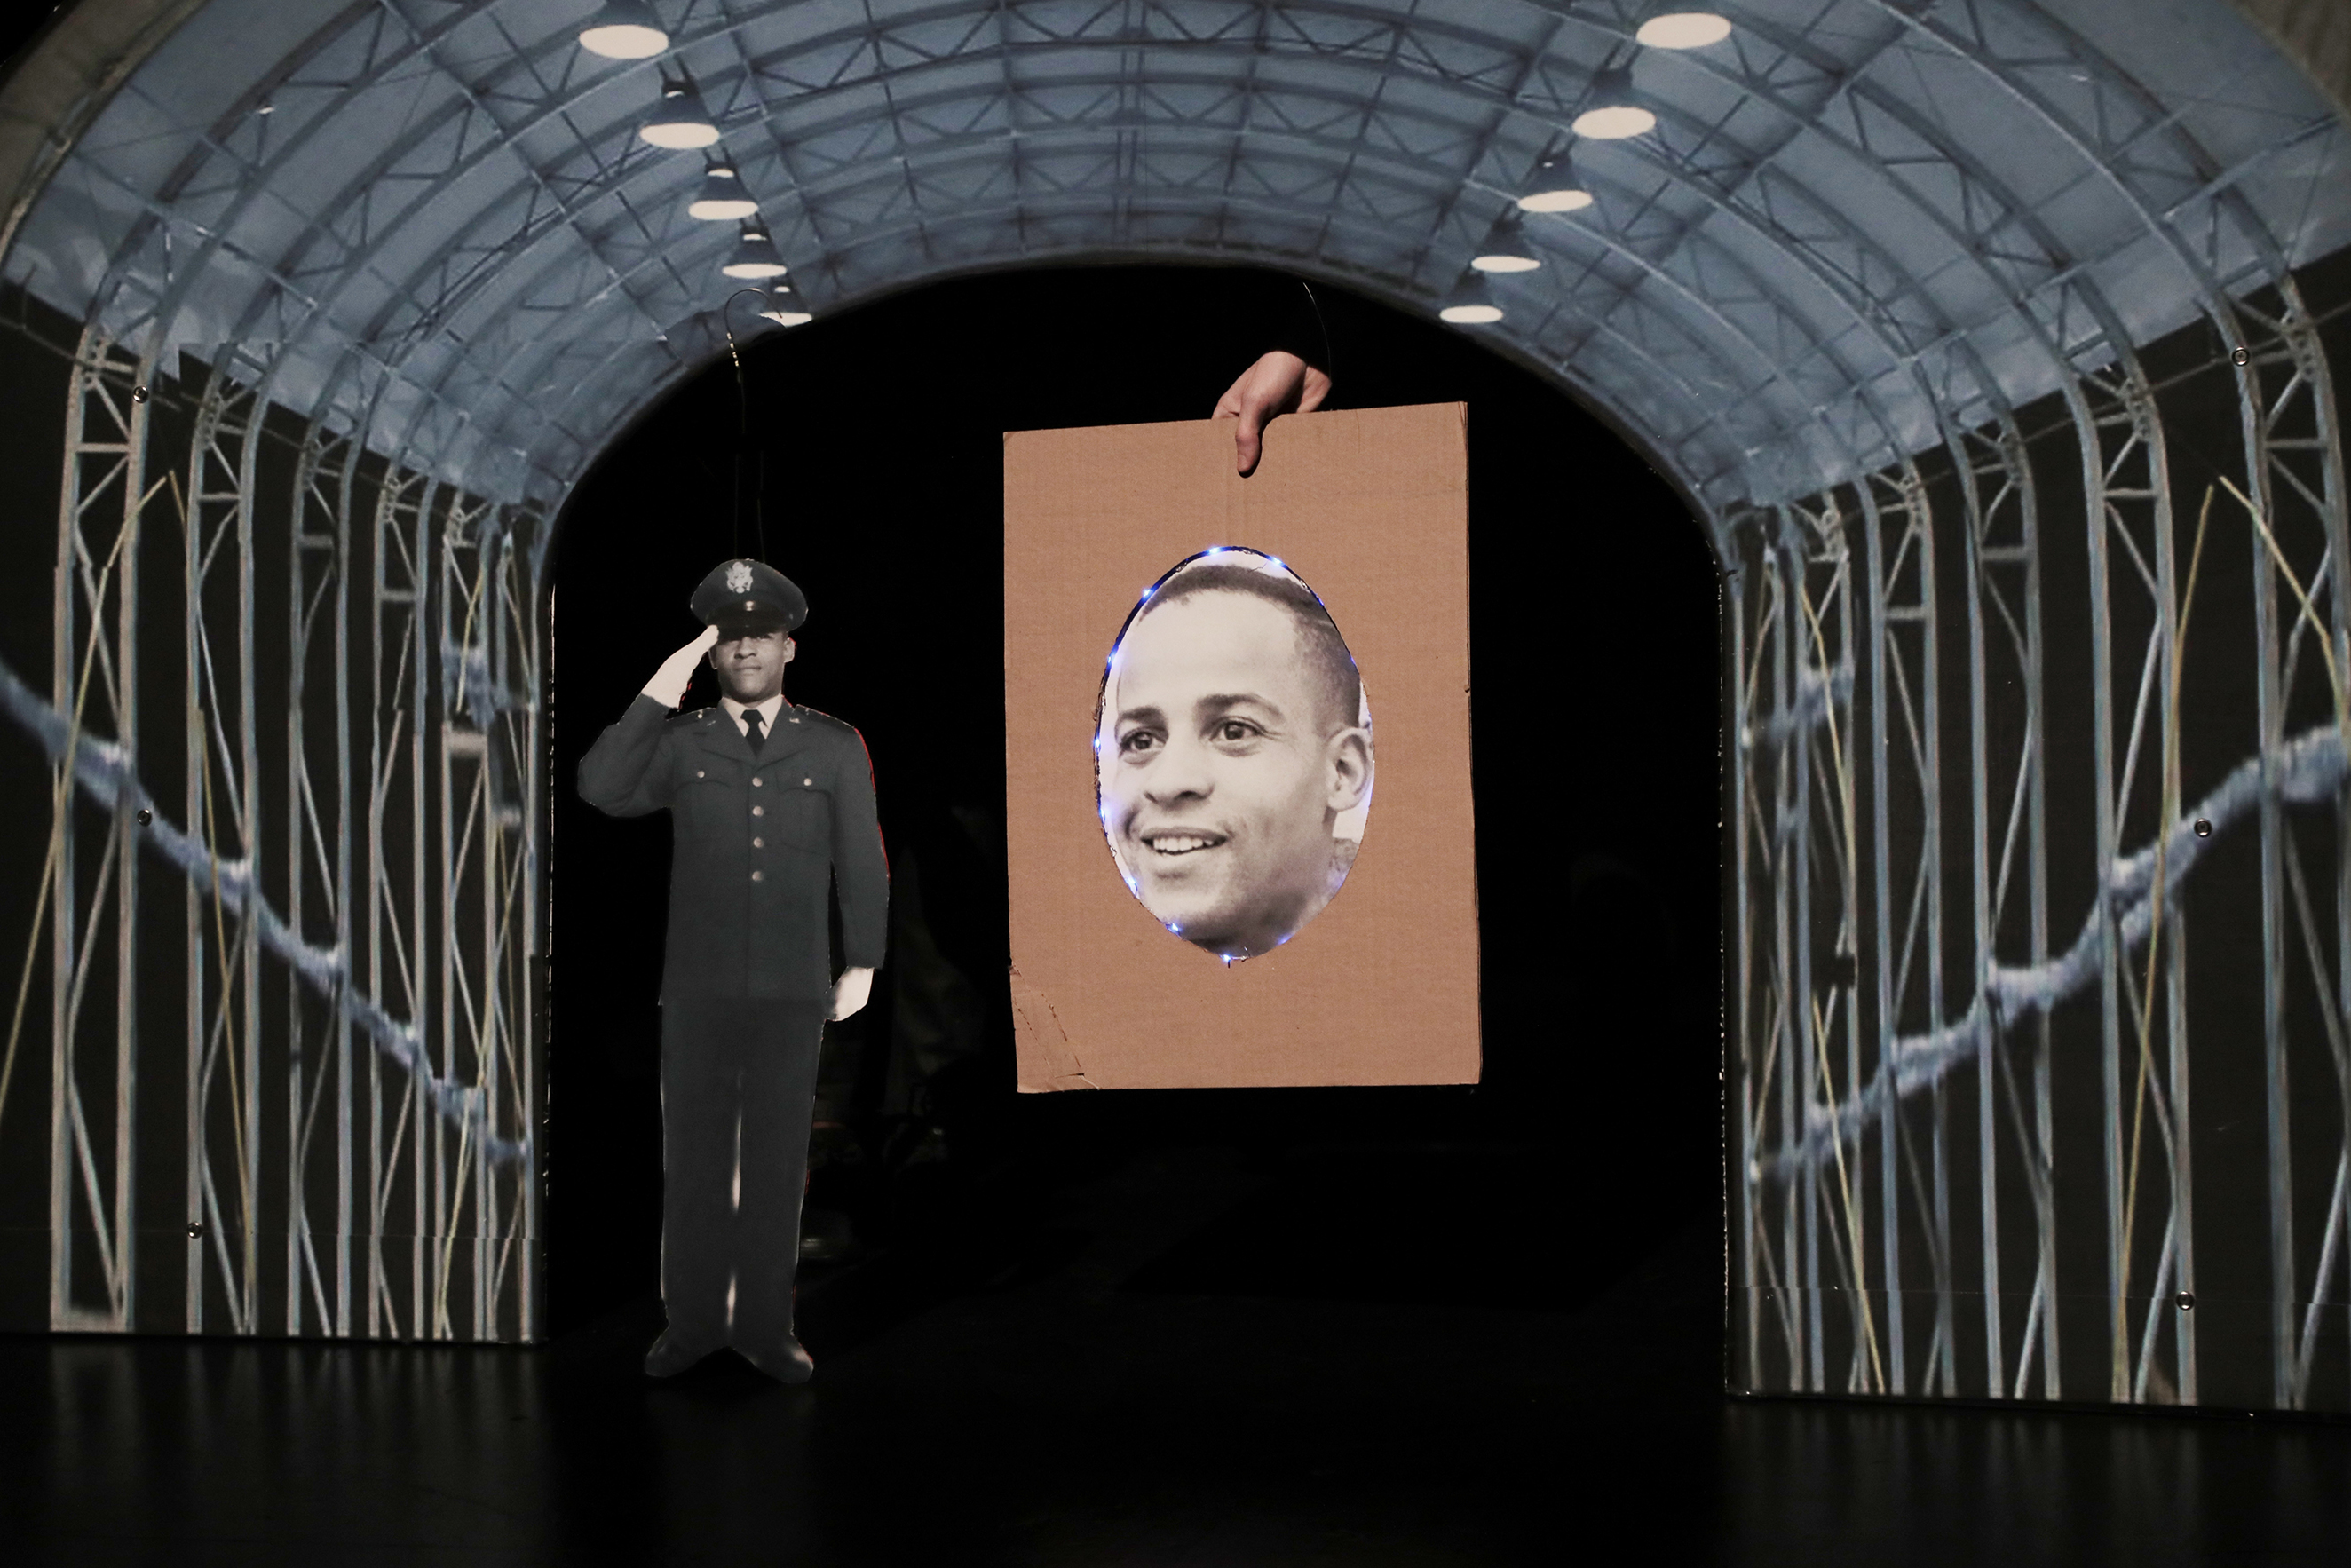 a man saluting next to a drawing of a face on a piece of cardboard